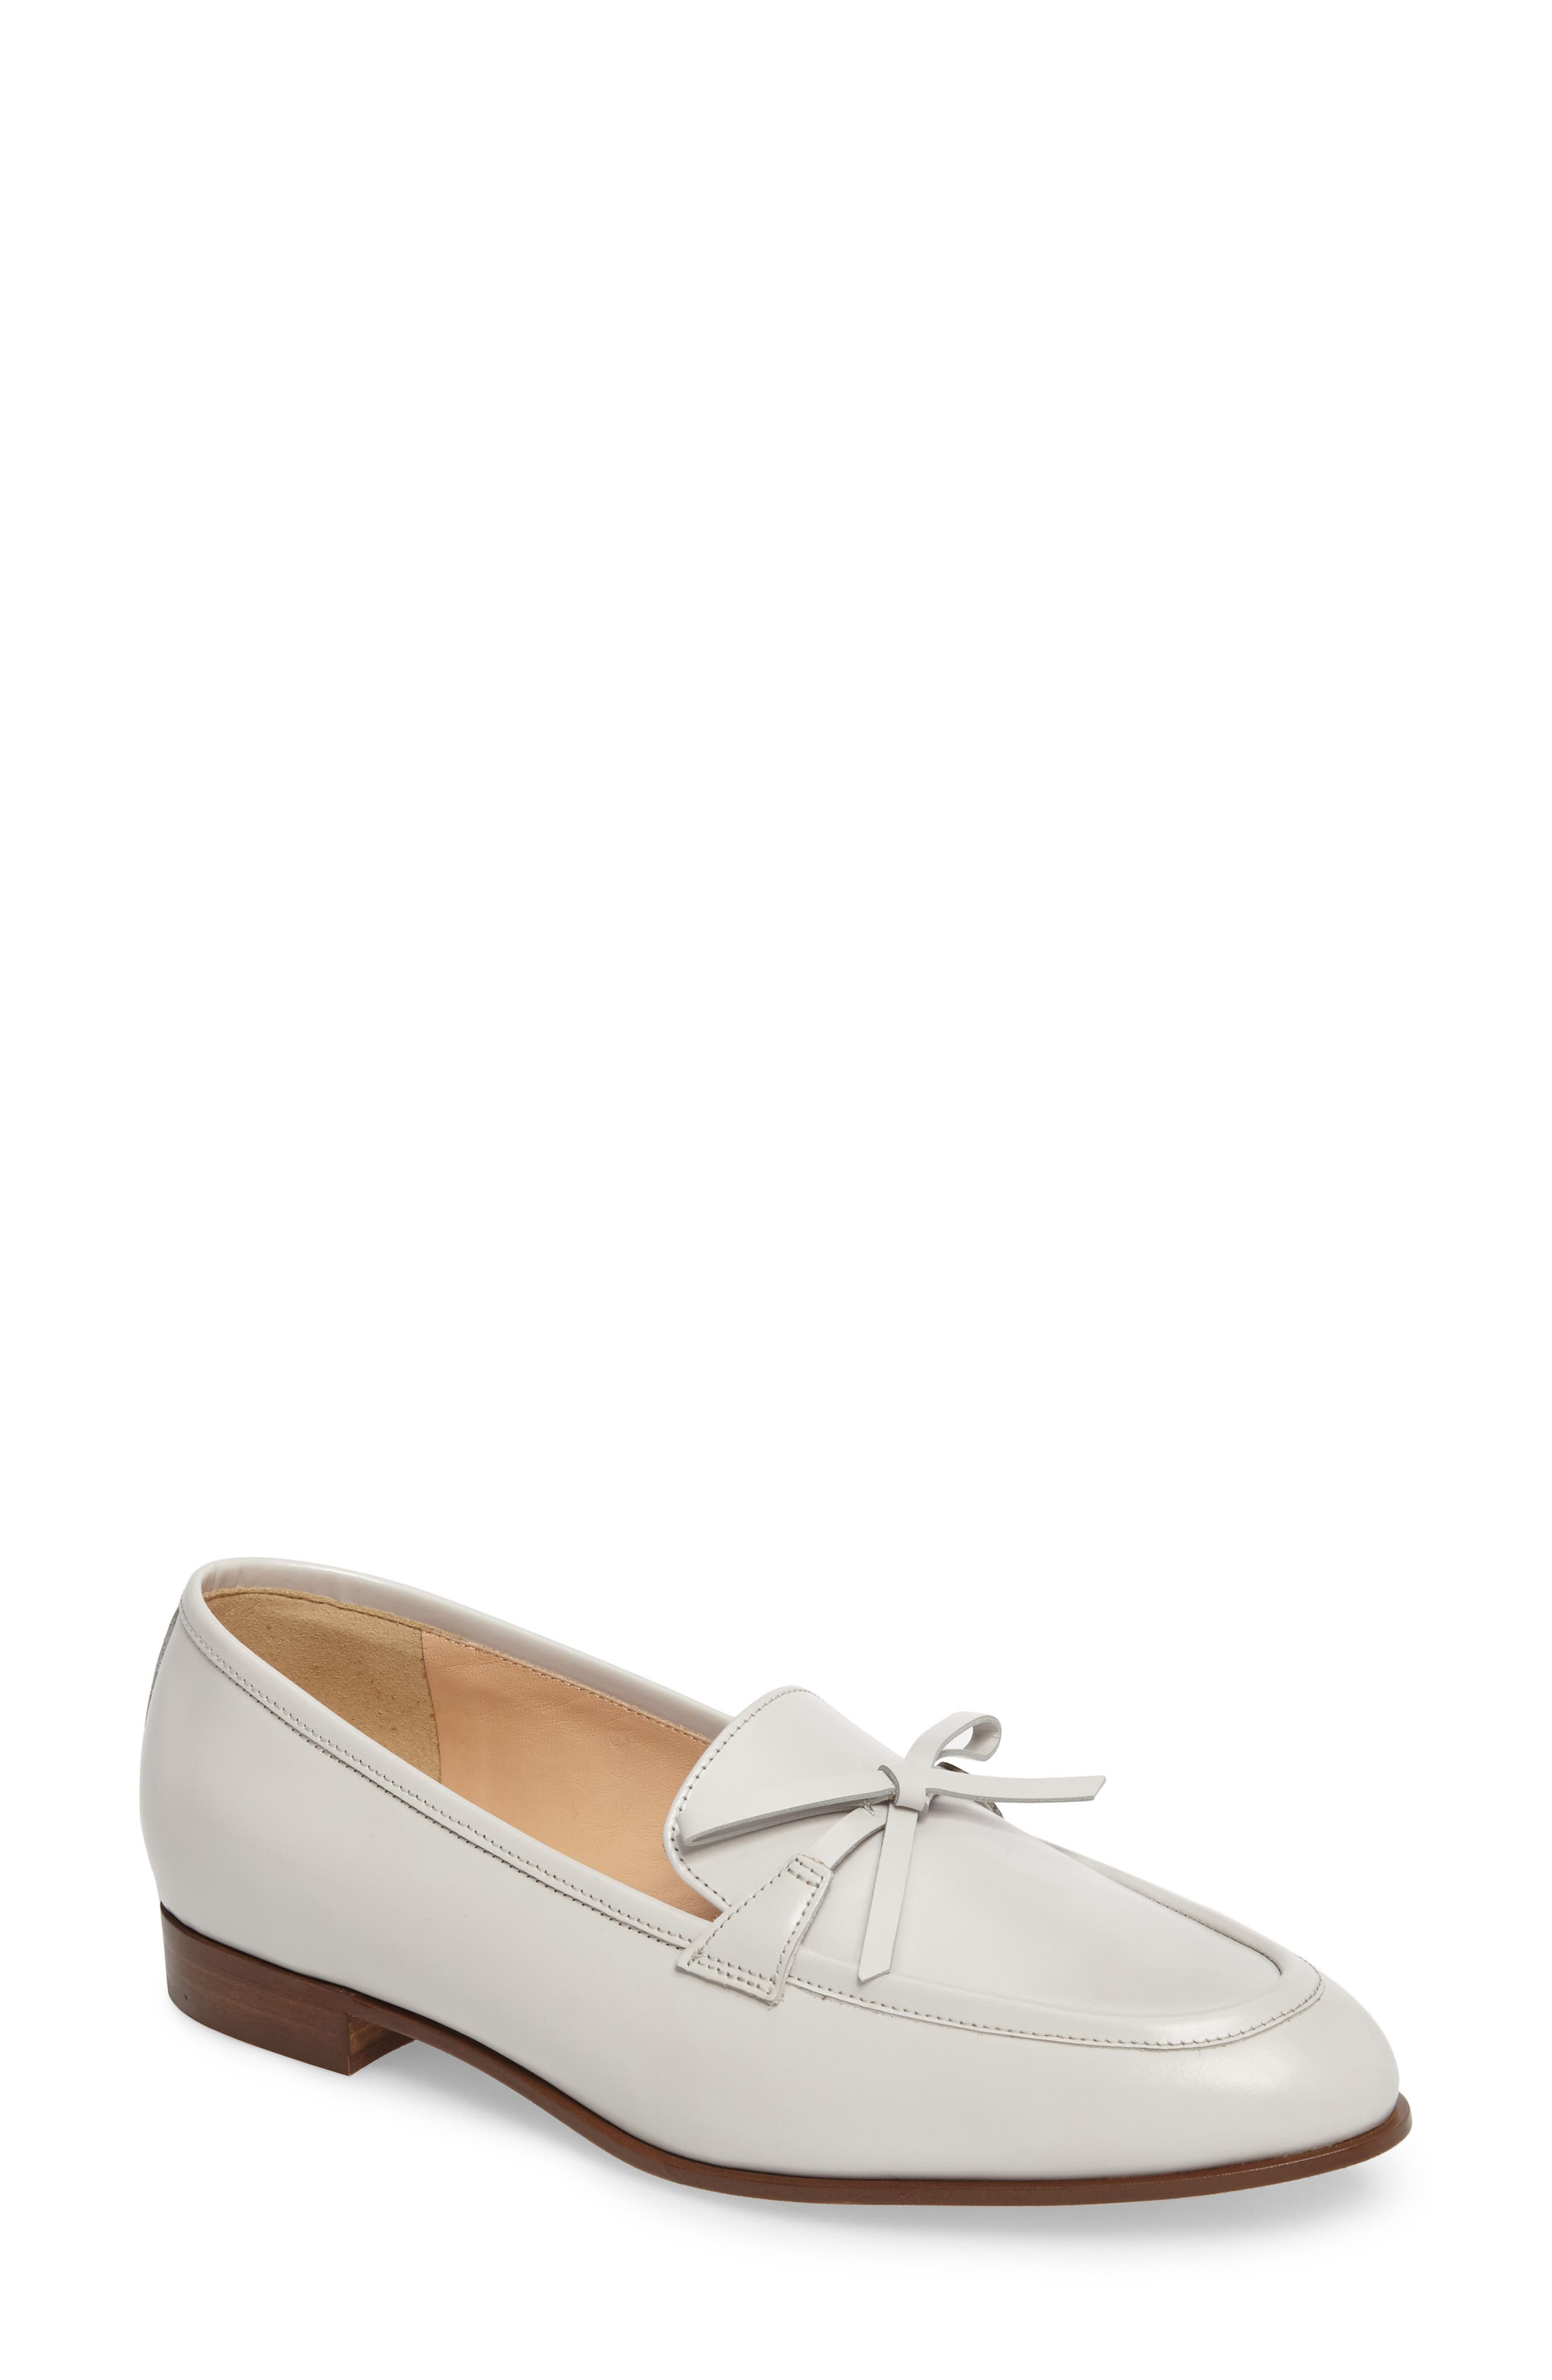 Bow Loafer,                             Main thumbnail 1, color,                             Highland Mist Leather